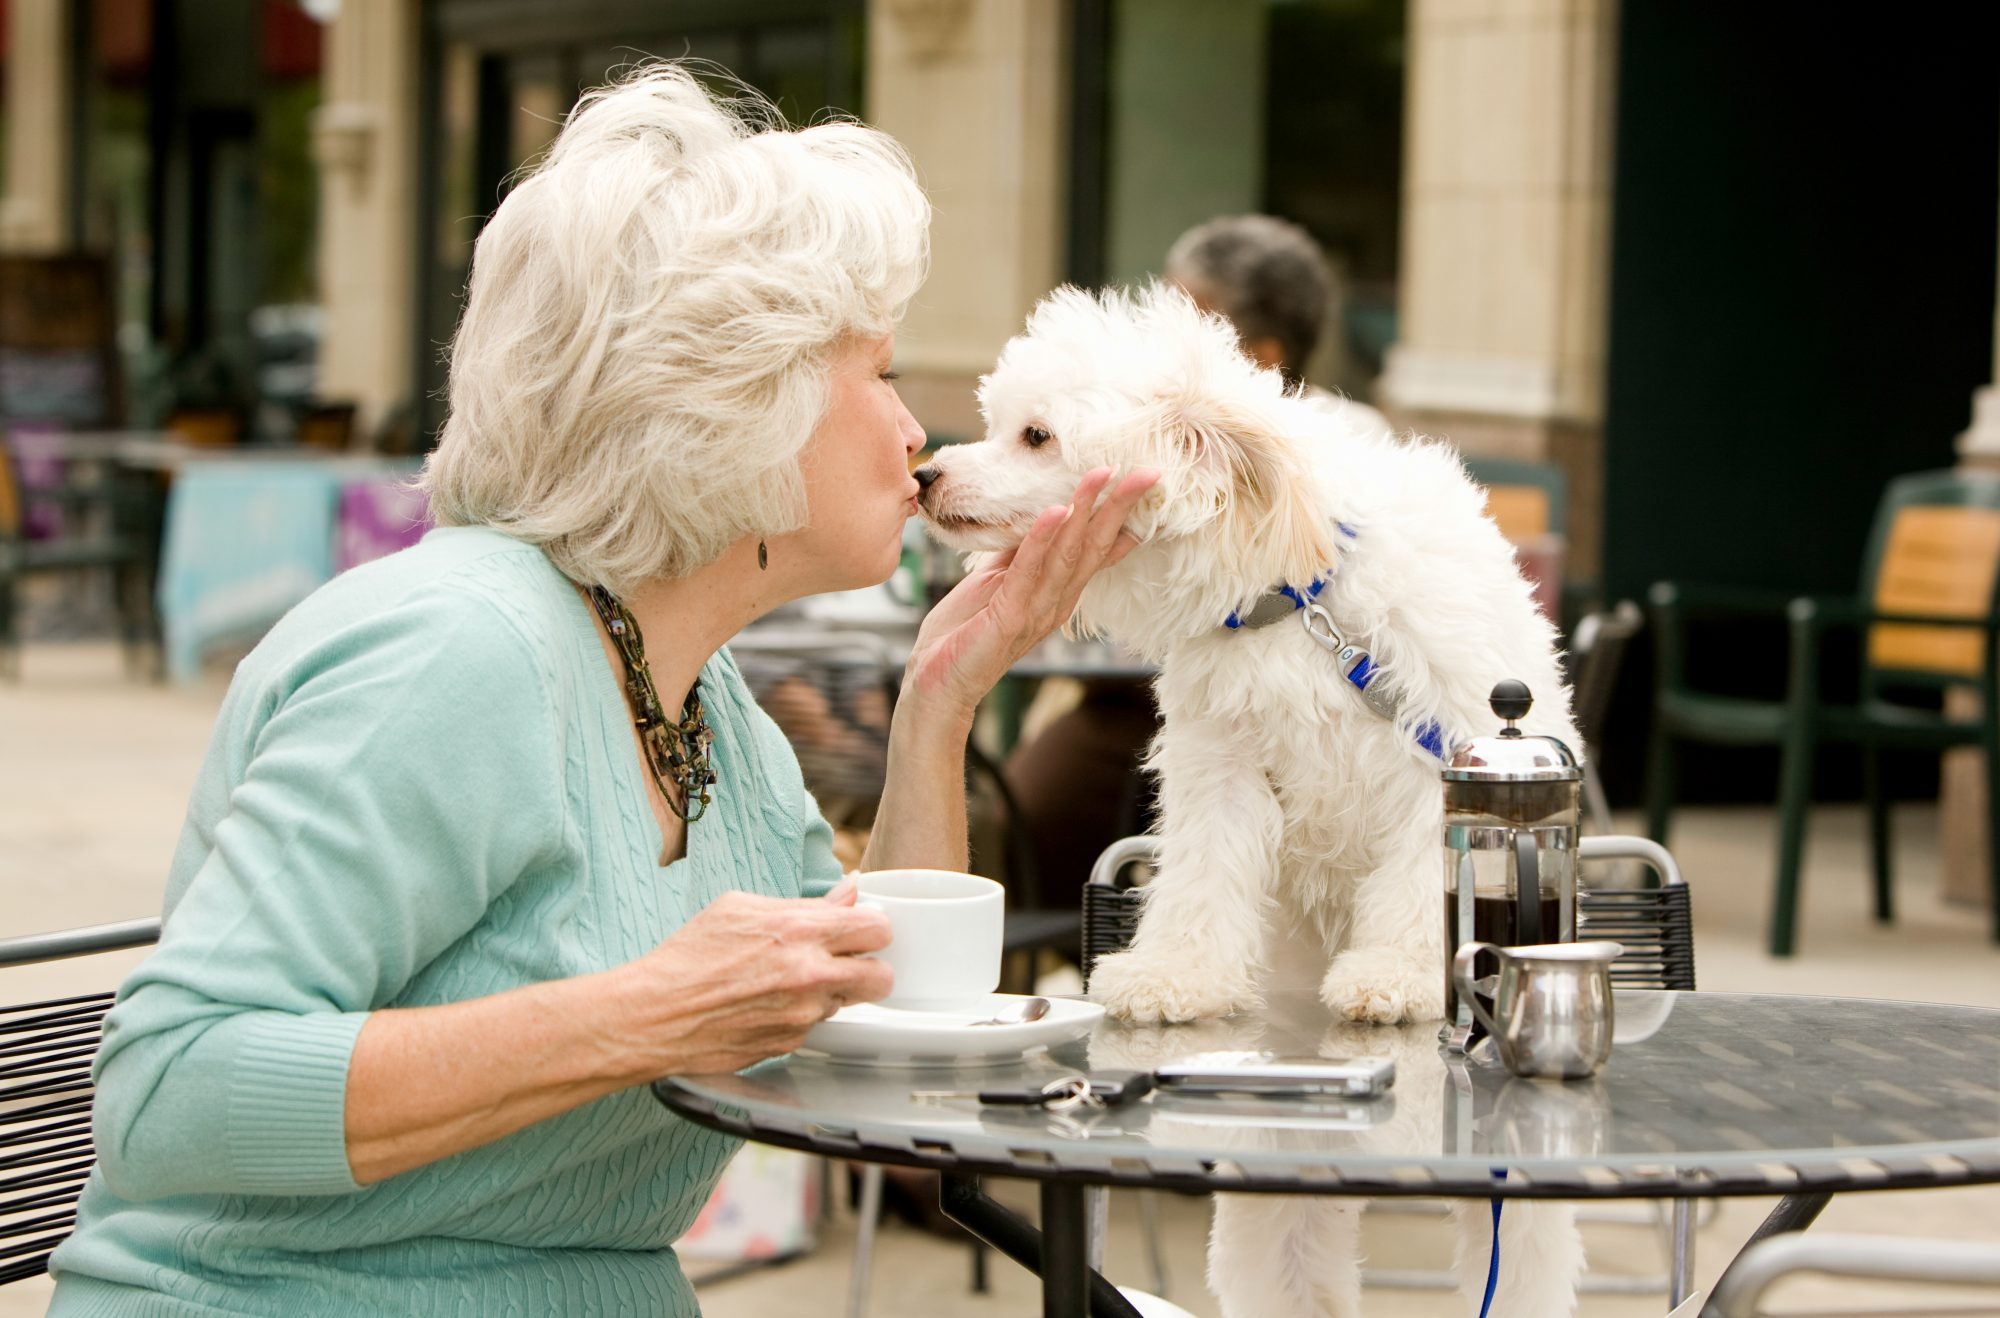 The Blue Ridge Mountain city calls itself Dog City U.S.A., and canines are welcome at bakeries, bars breweries and stores. A hotel, Aloft, even fosters dogs until they are adopted by guests.